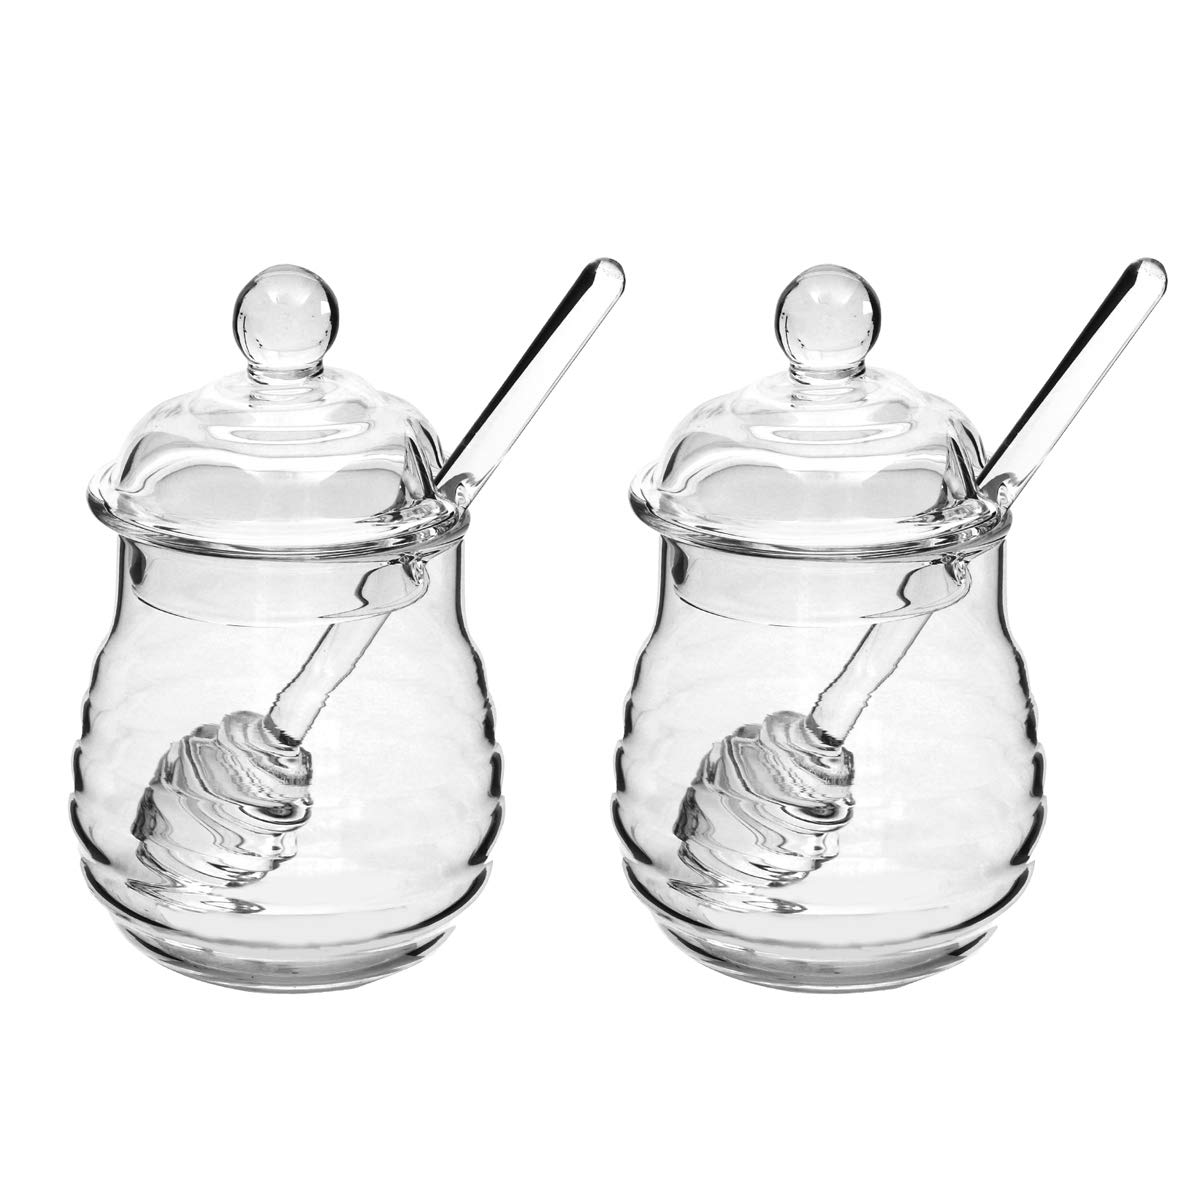 2PCS 250ml Glass Honey Pot Clear Jam Jar Set with Dipper and Lid for Home Kitchen Use